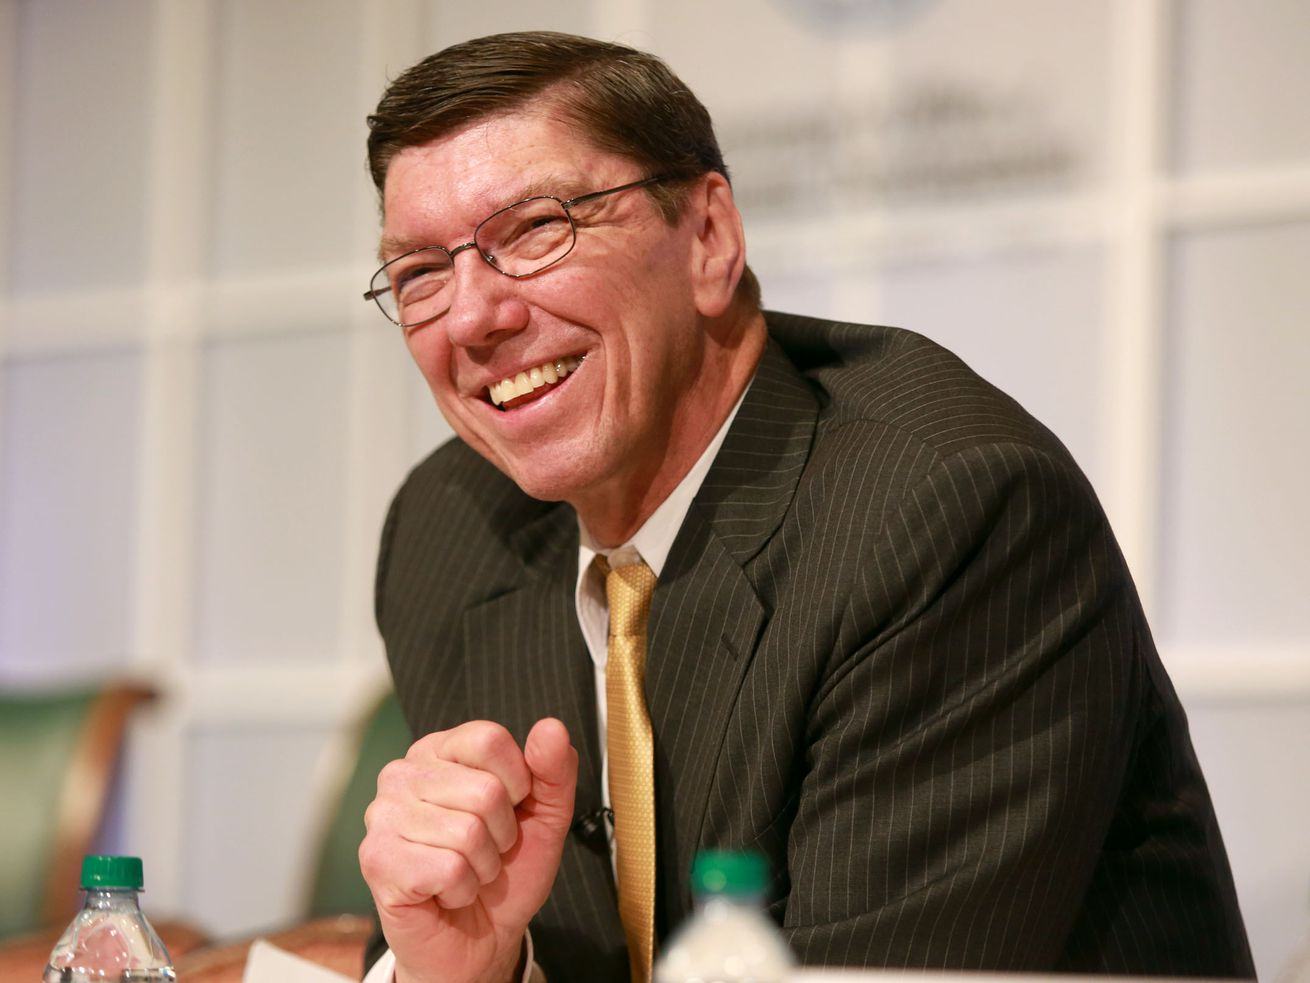 Clayton Christensen, guru of disruptive innovation and Latter-day Saint leader, dies at 67